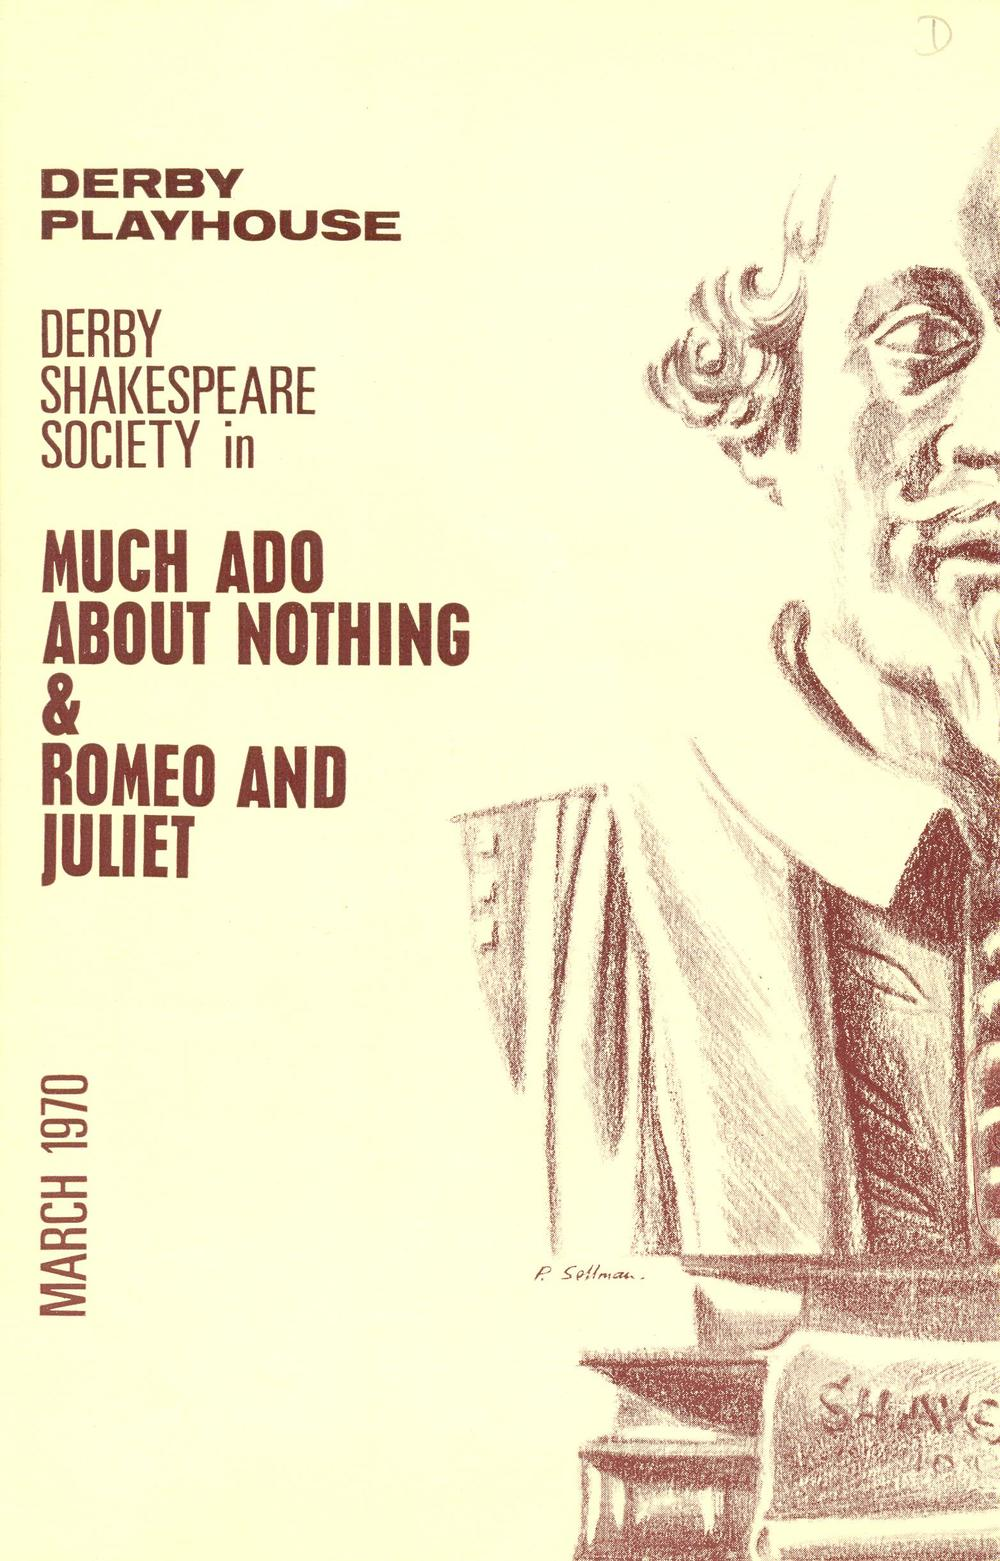 'Much Ado About Nothing' & 'Romeo & Juliet' 1970